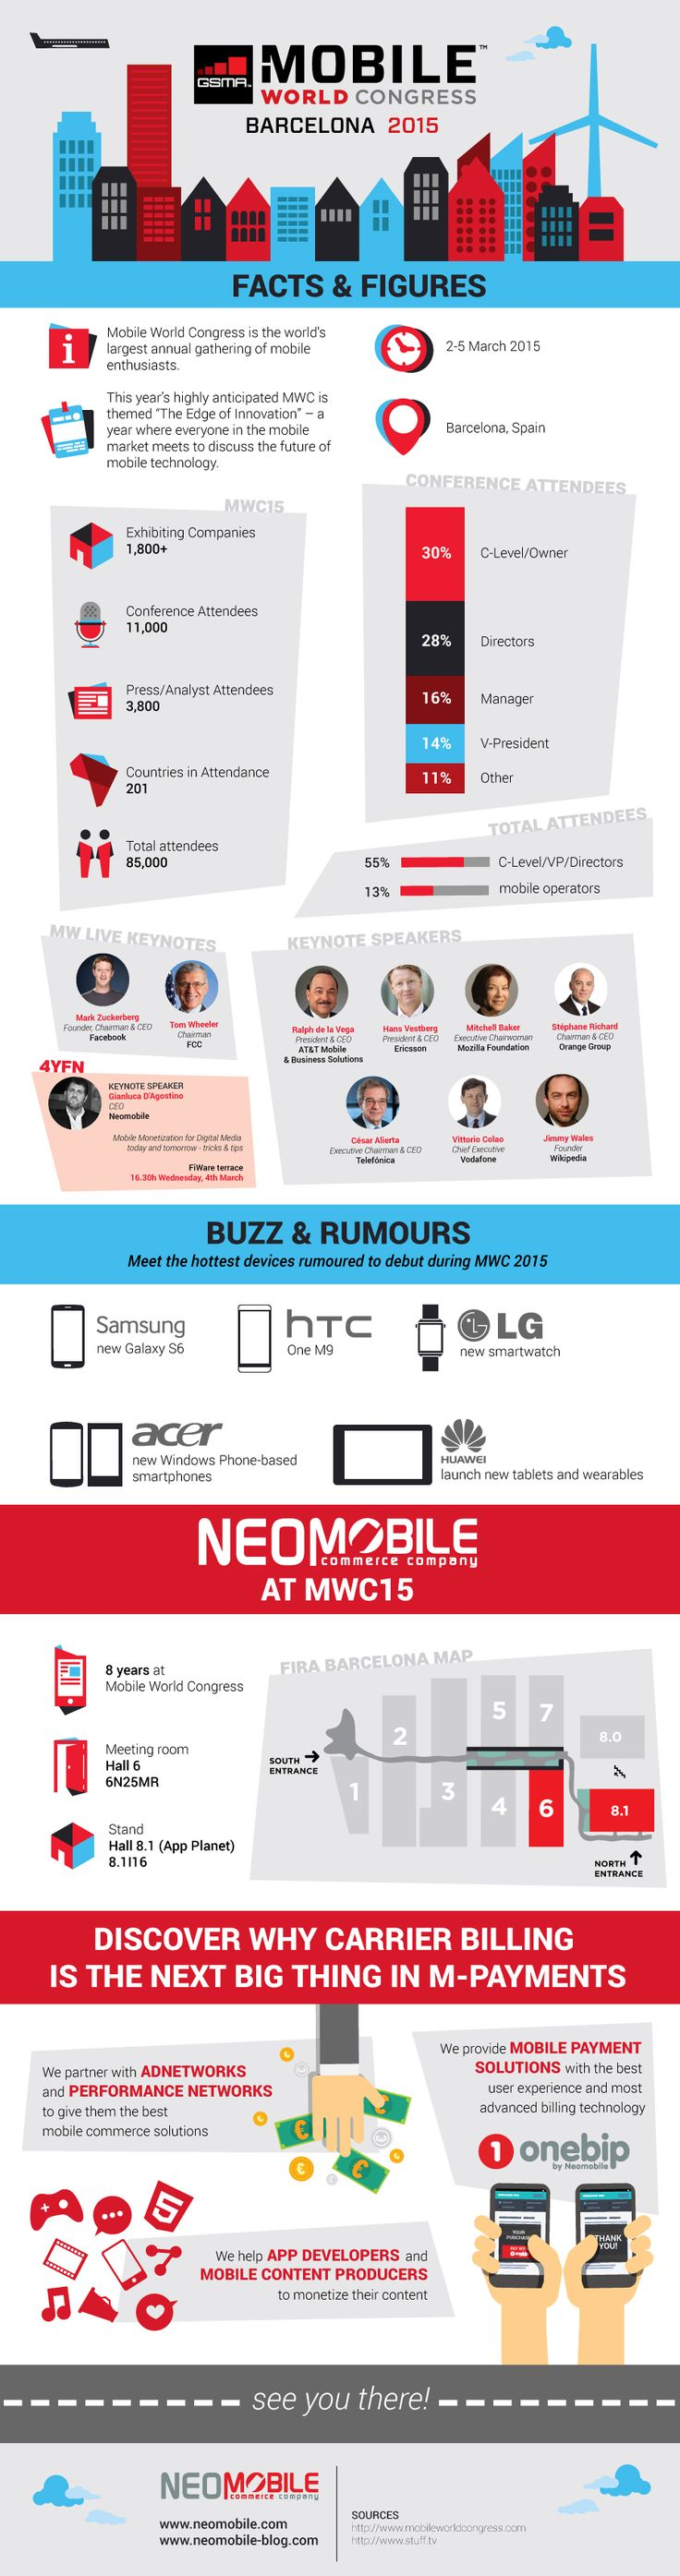 Discover all the facts & figures on this years' edition of the world's greatest mobile event: the GSMA Mobile World Congress 2015 in our new article and infographic #MWC15